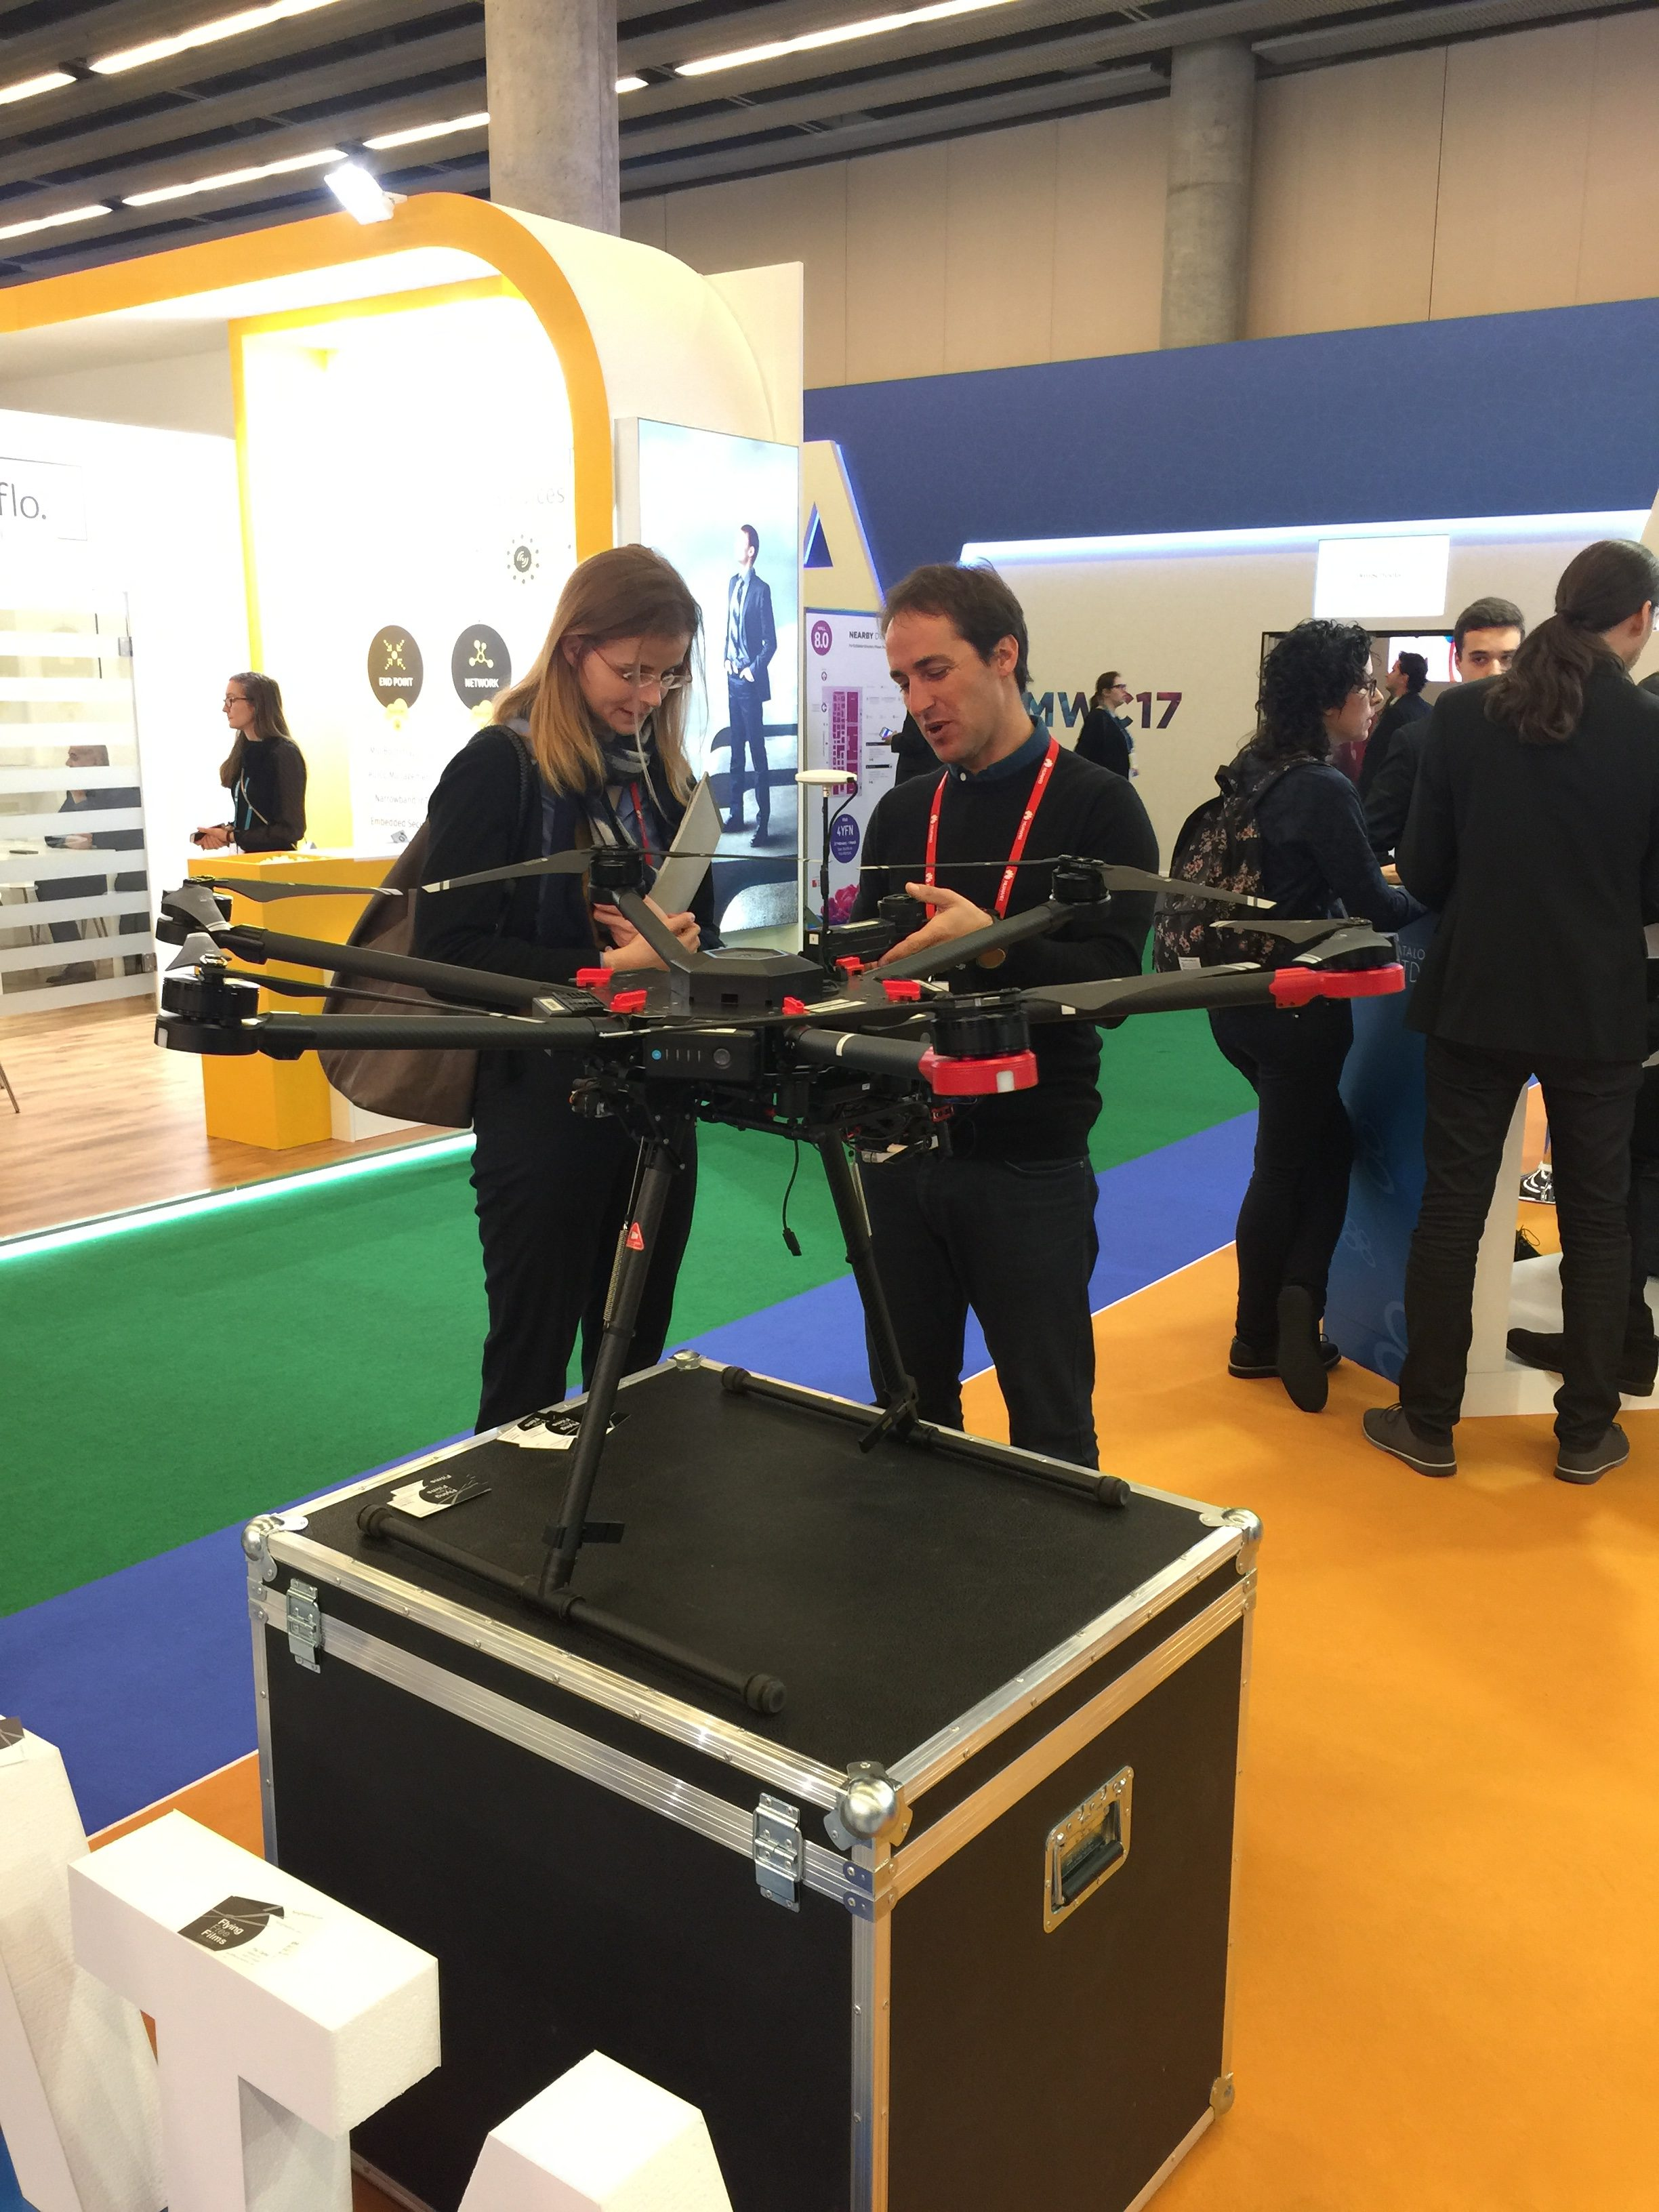 drones-at-mobile-world-congress